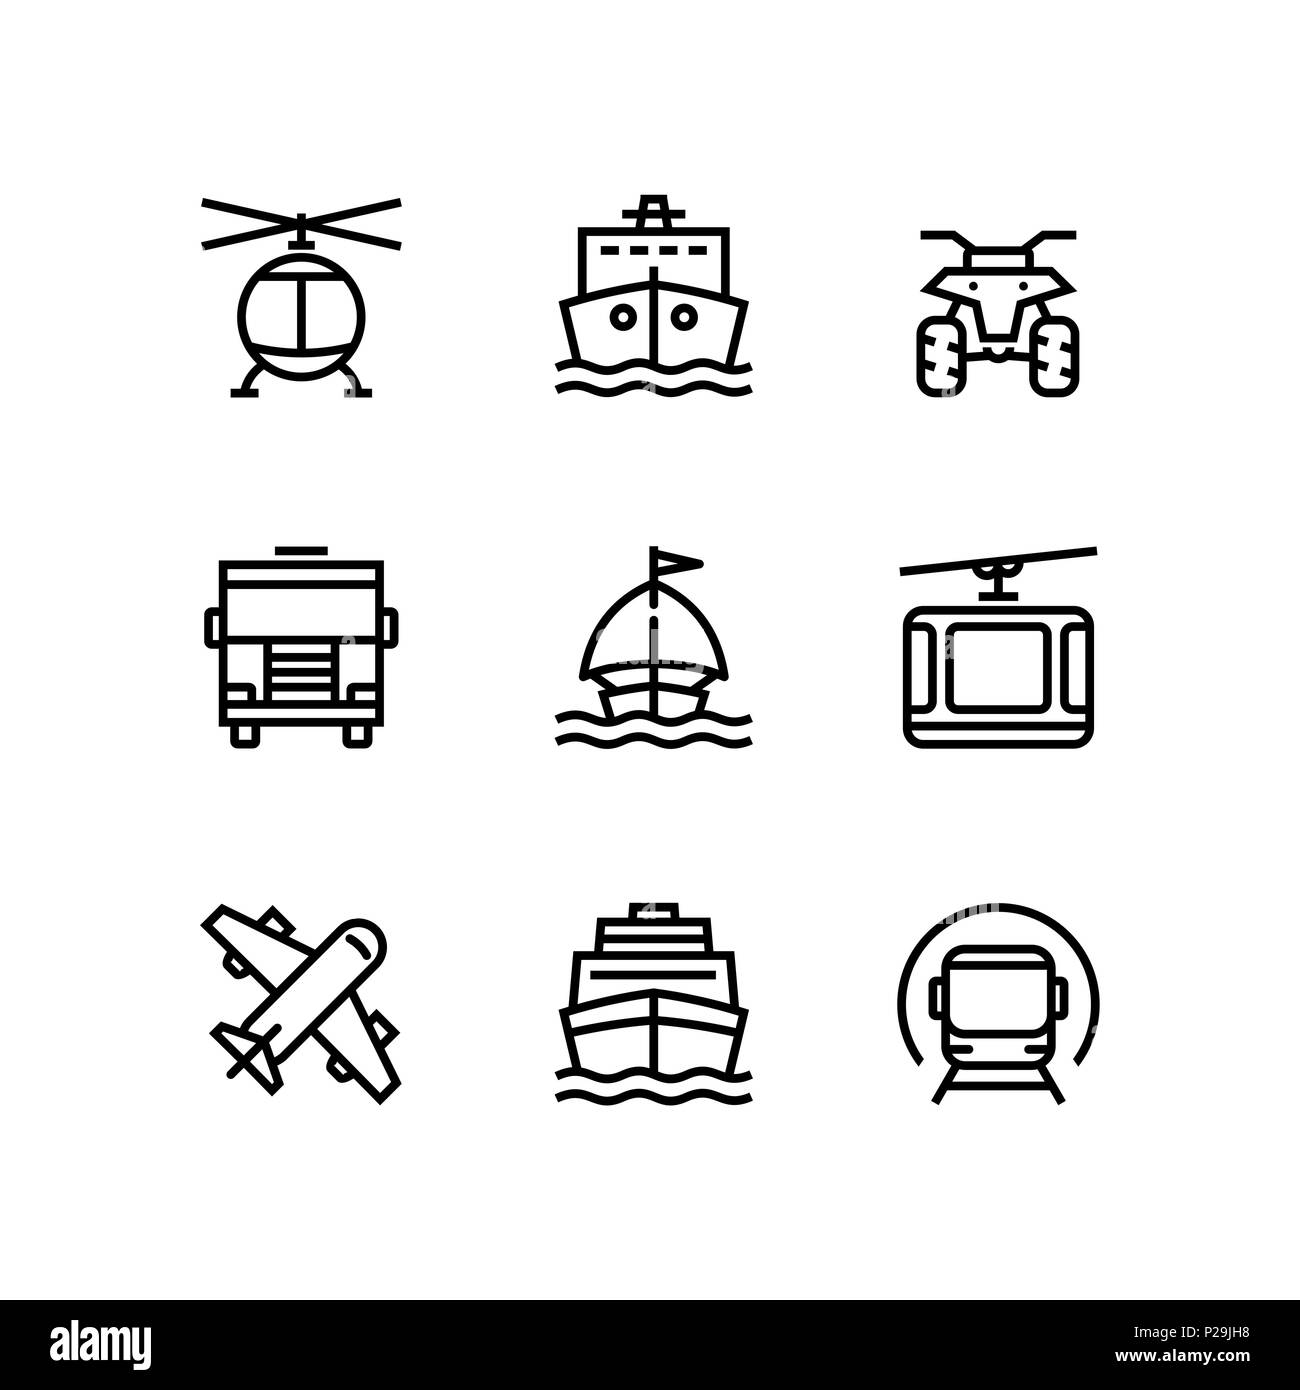 Transport, vehicle, truck and car simple vector icons for web and mobile design pack 3 - Stock Image